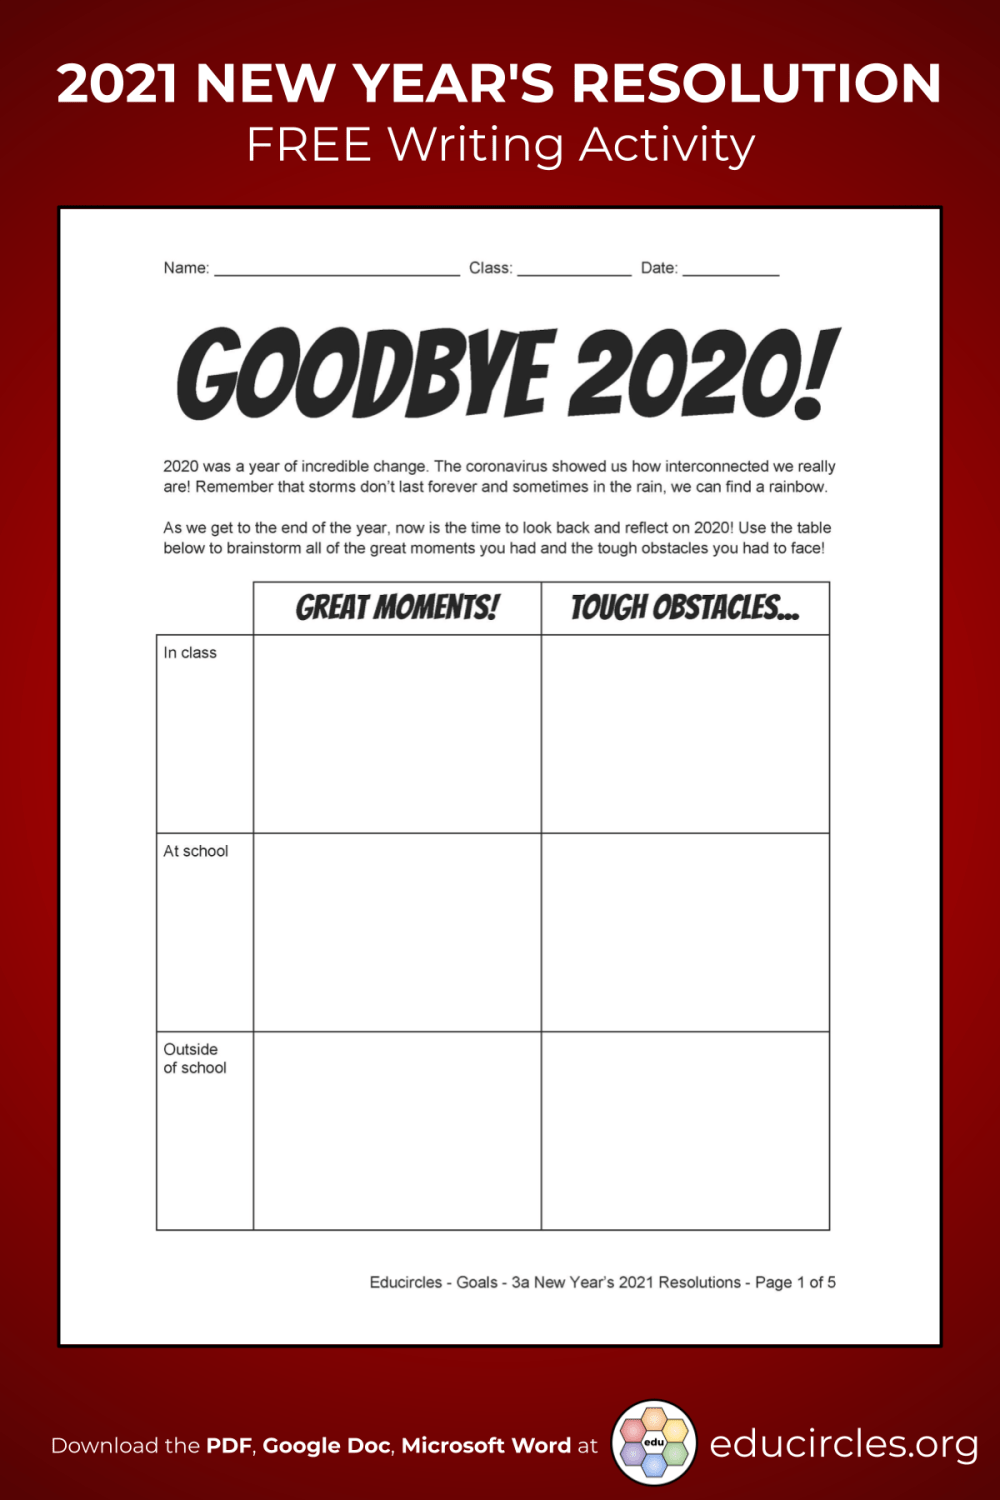 medium resolution of 2021 NEW YEAR'S RESOLUTIONS ACTIVITY WORKSHEET / VIDEO